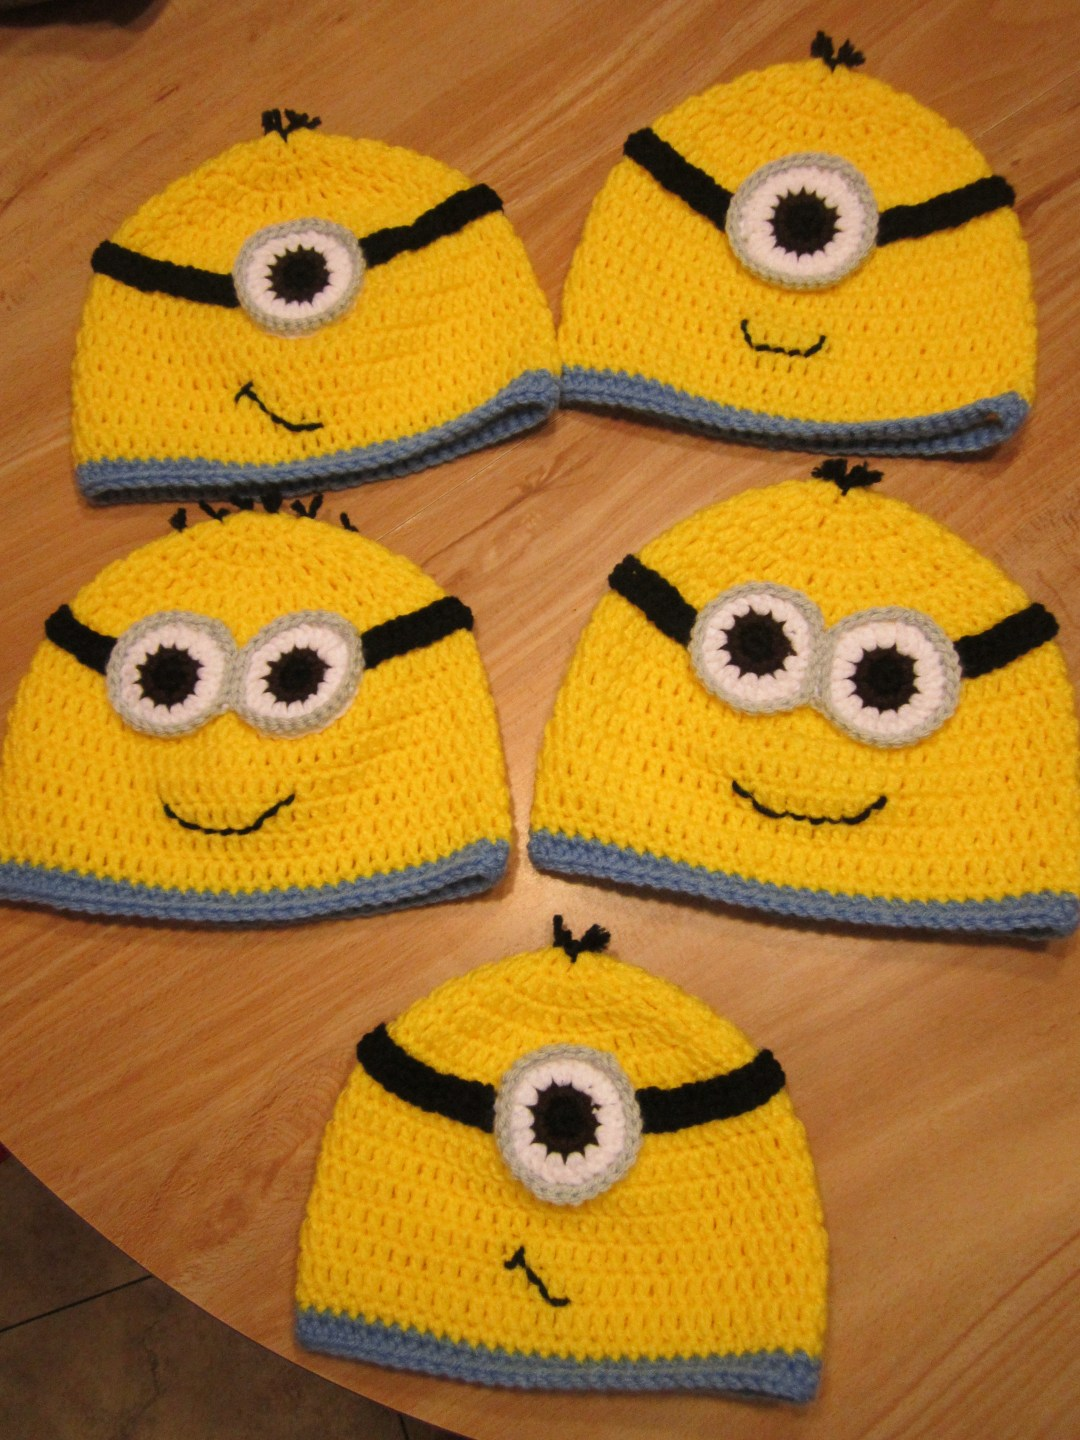 Crochet Hat Pattern For Minion : Crochet Despicable Me